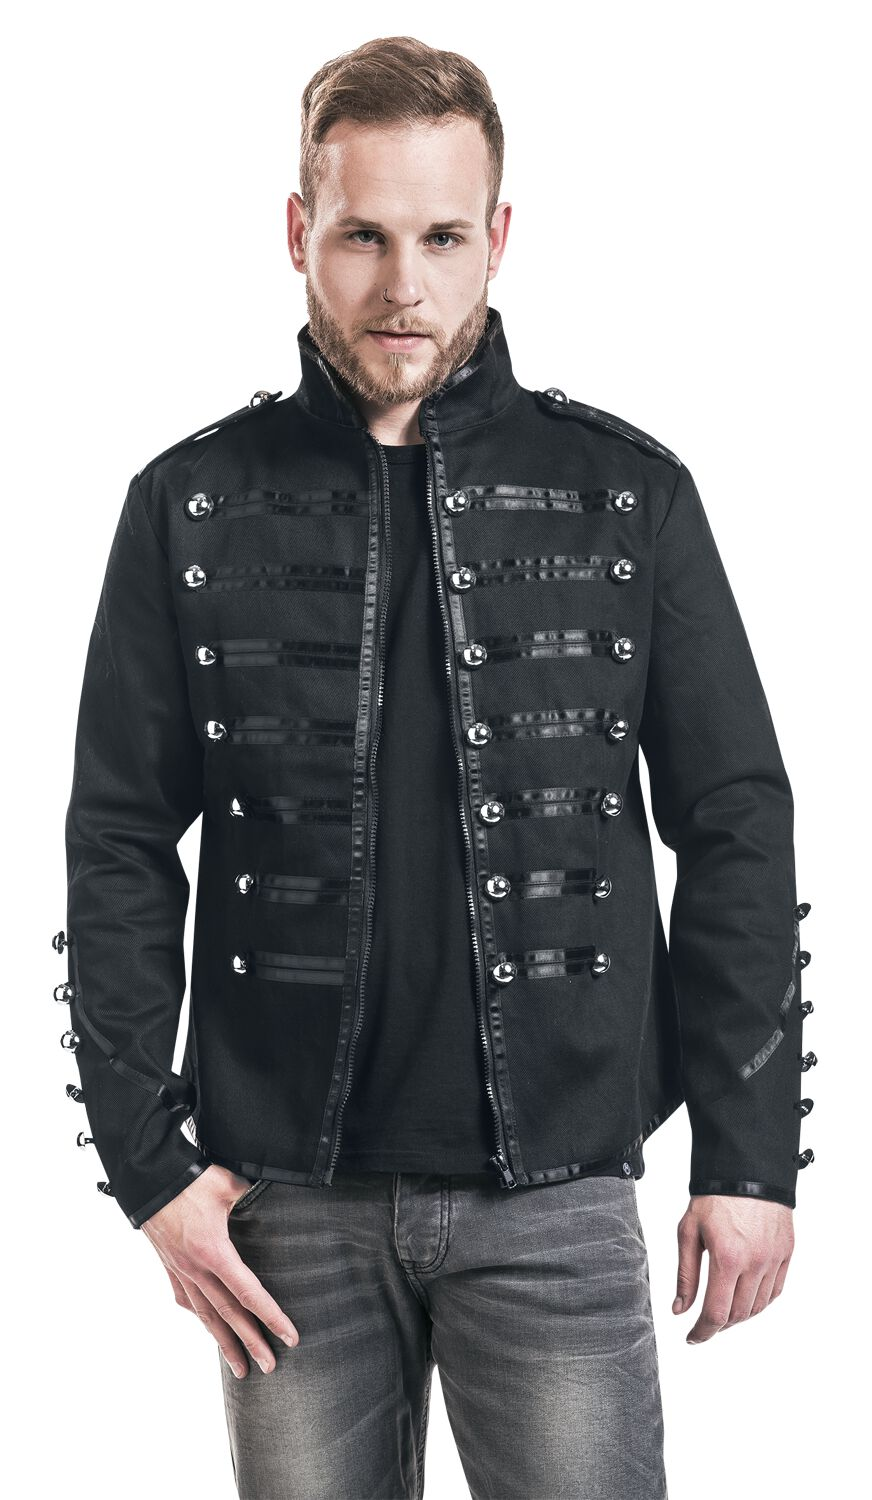 Kersttrui Man Xxl.Military Drummer Banned Uniform Jacket Emp